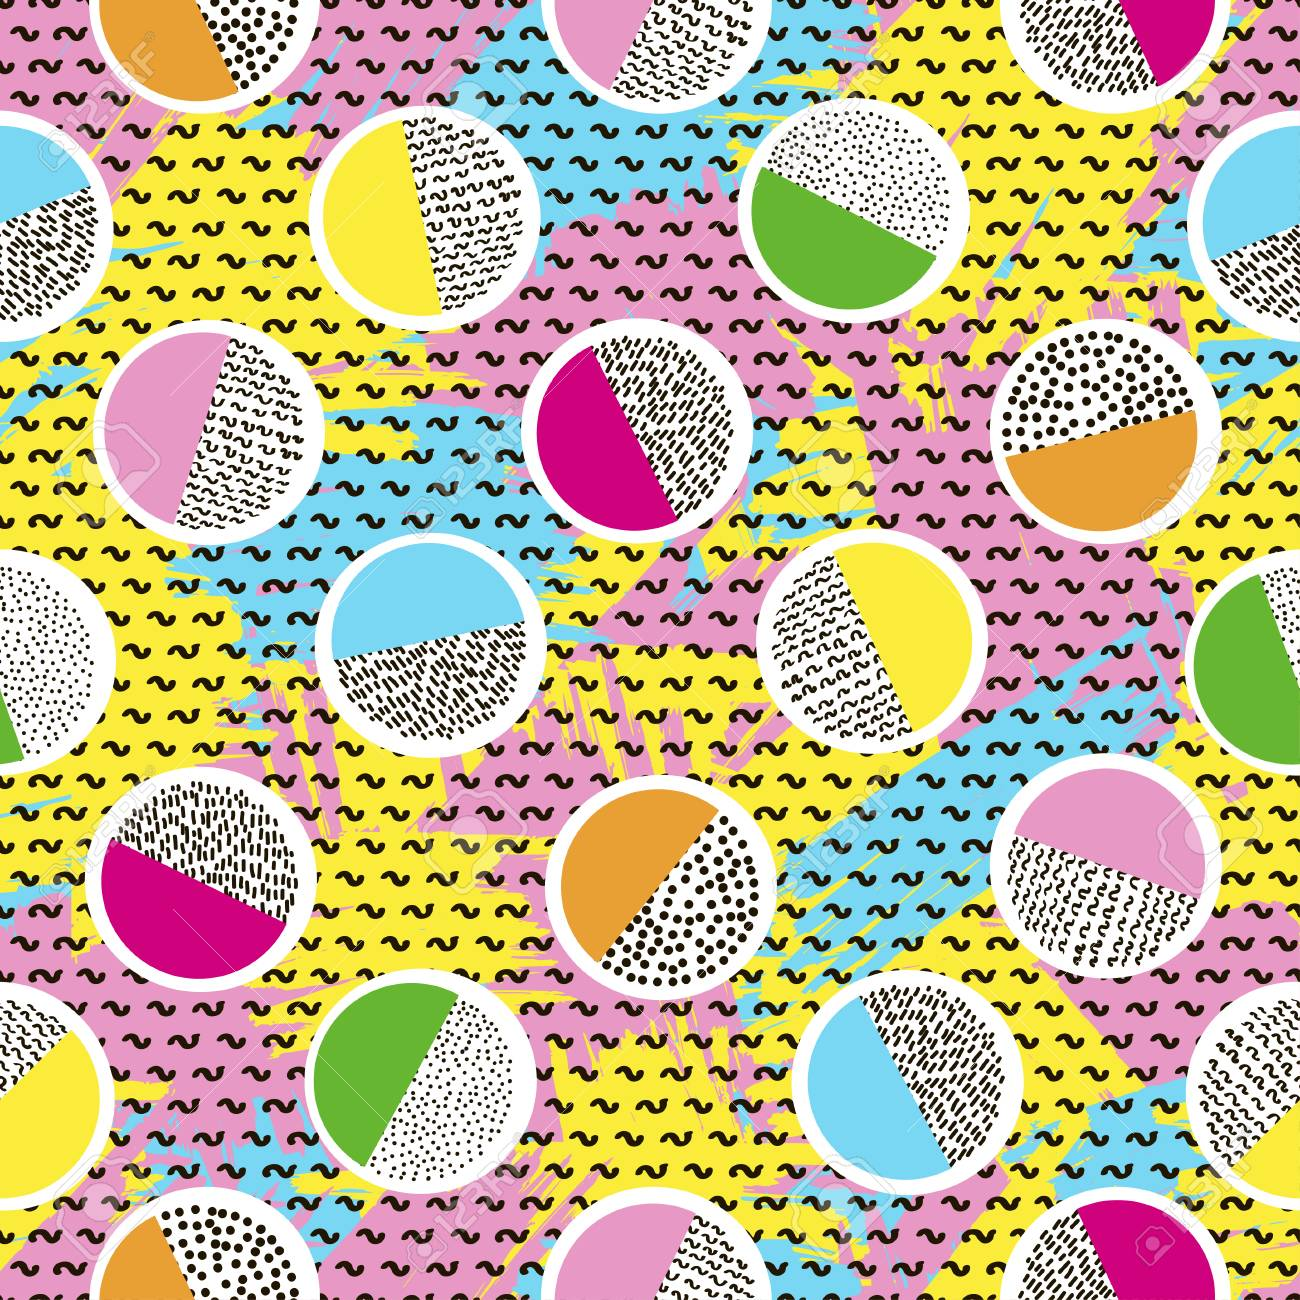 Colorful seamless pattern from circles on the bright brush strokes background and black dots. 80's - 90's years design style. Trendy. Vector illustration - 97575900